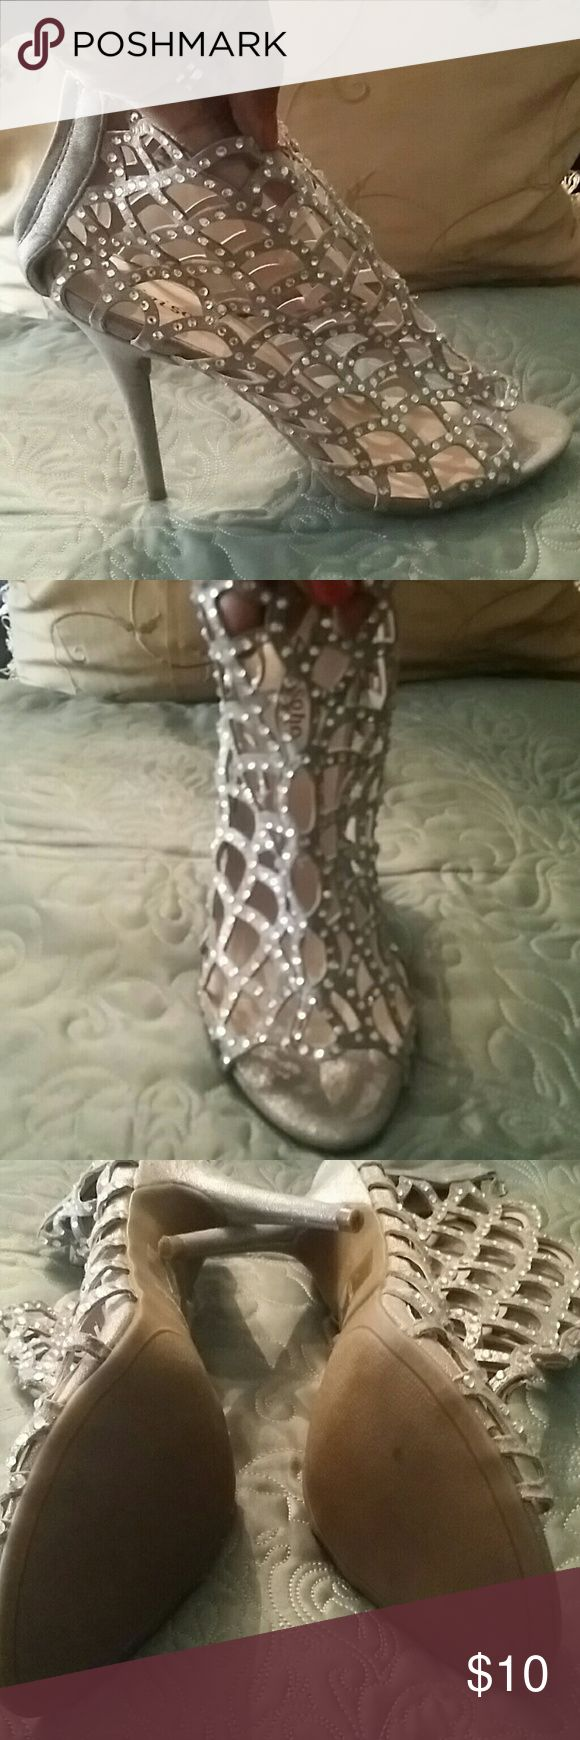 Cage heel sandal Silver with rhinestones 4.5 inch heel Shoes Ankle Boots & Booties